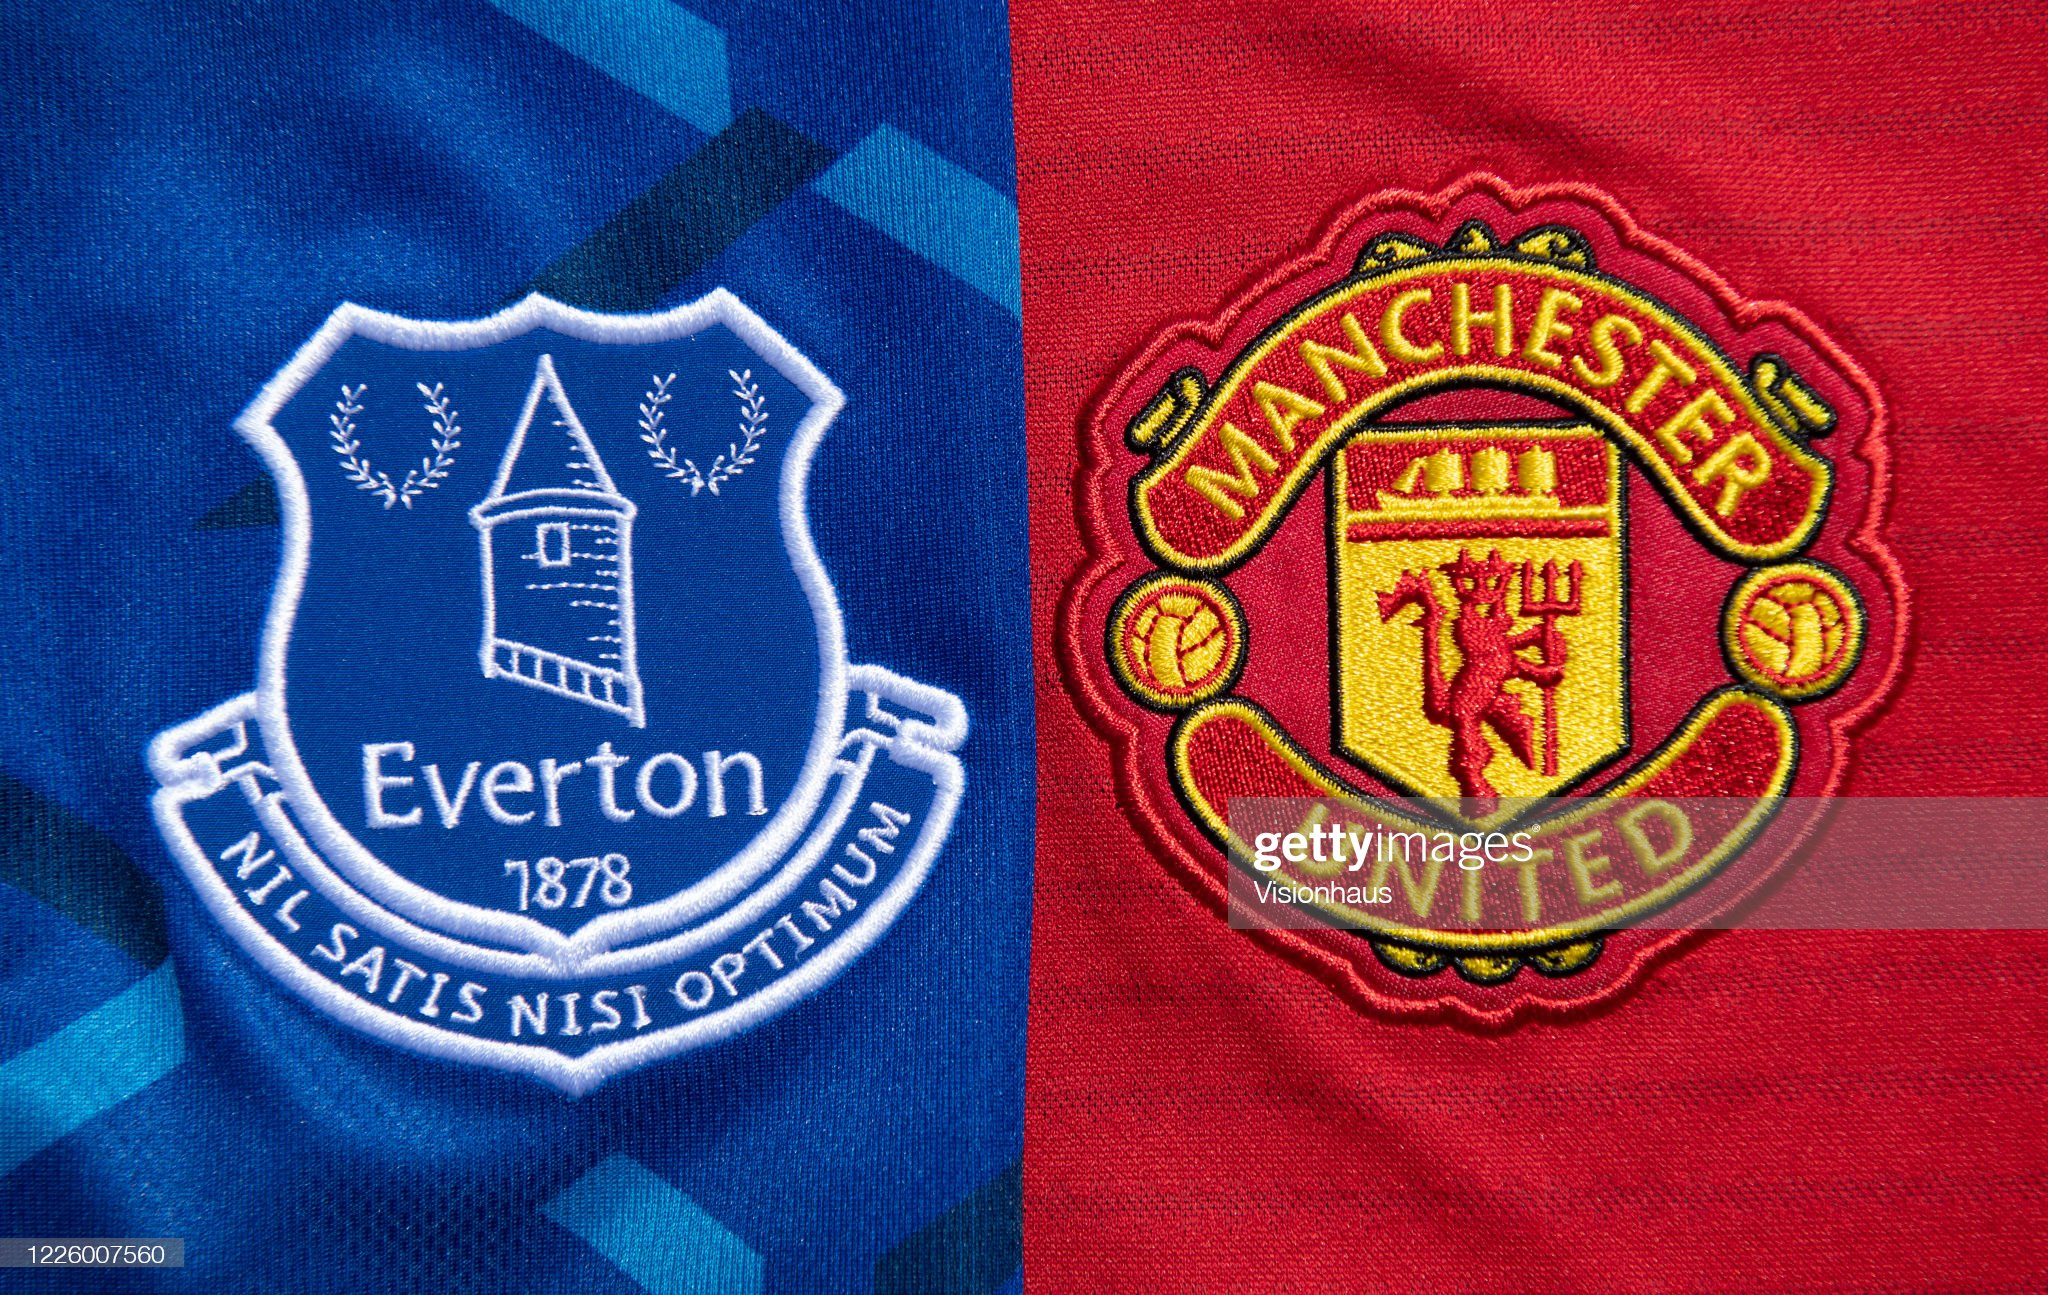 Everton vs Manchester United Preview, prediction and odds